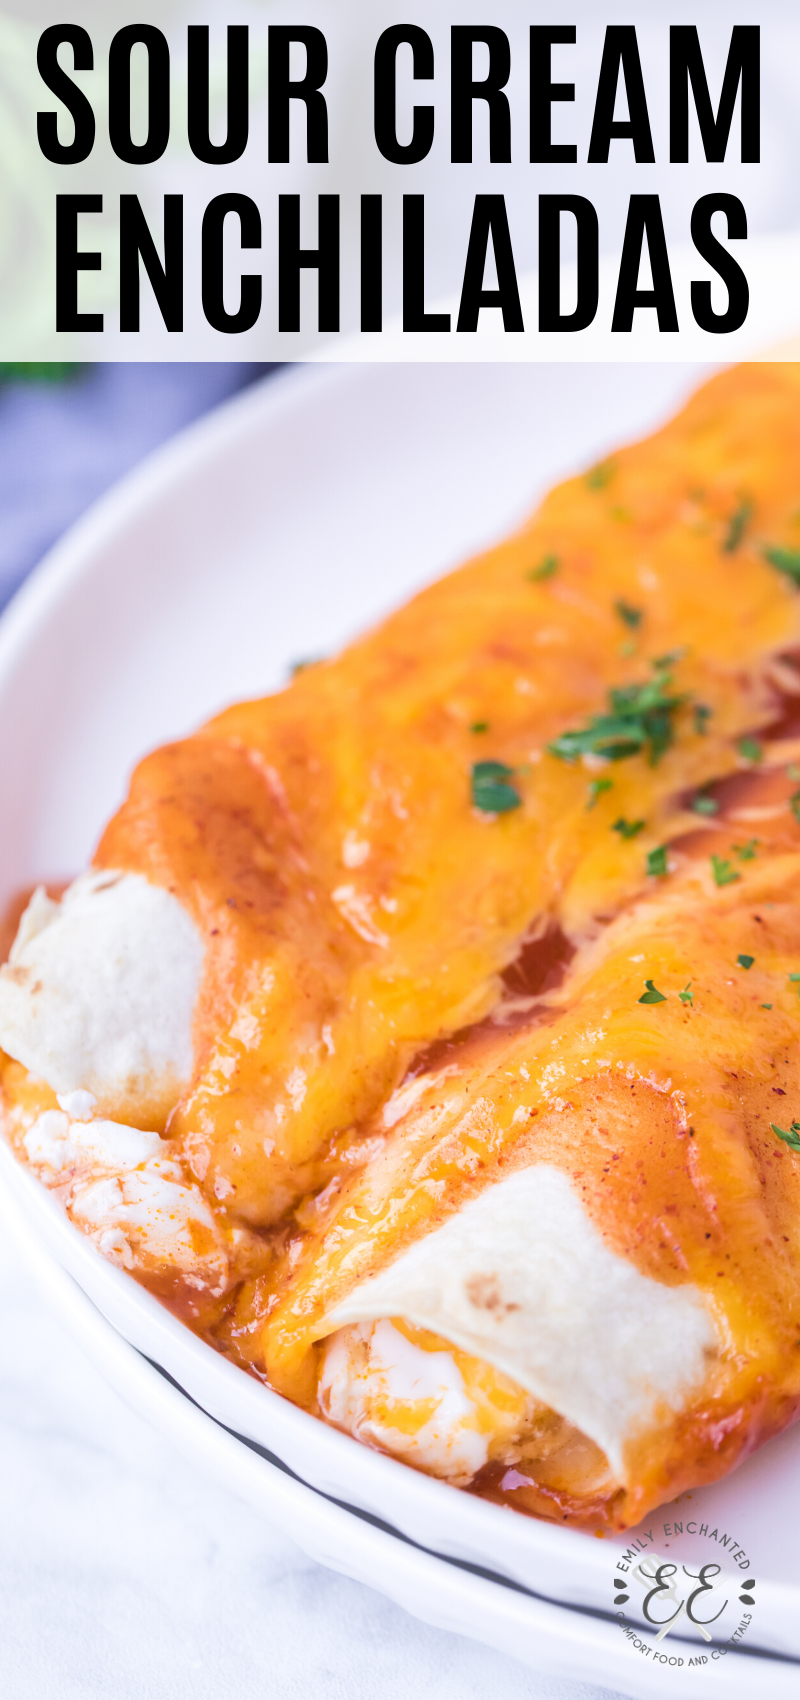 Sour Cream Enchiladas Recipe With Cheese And Enchilada Sauce In 2020 Sour Cream Enchiladas Cream Sauce Recipes Sour Cream Chicken Enchilada Recipe